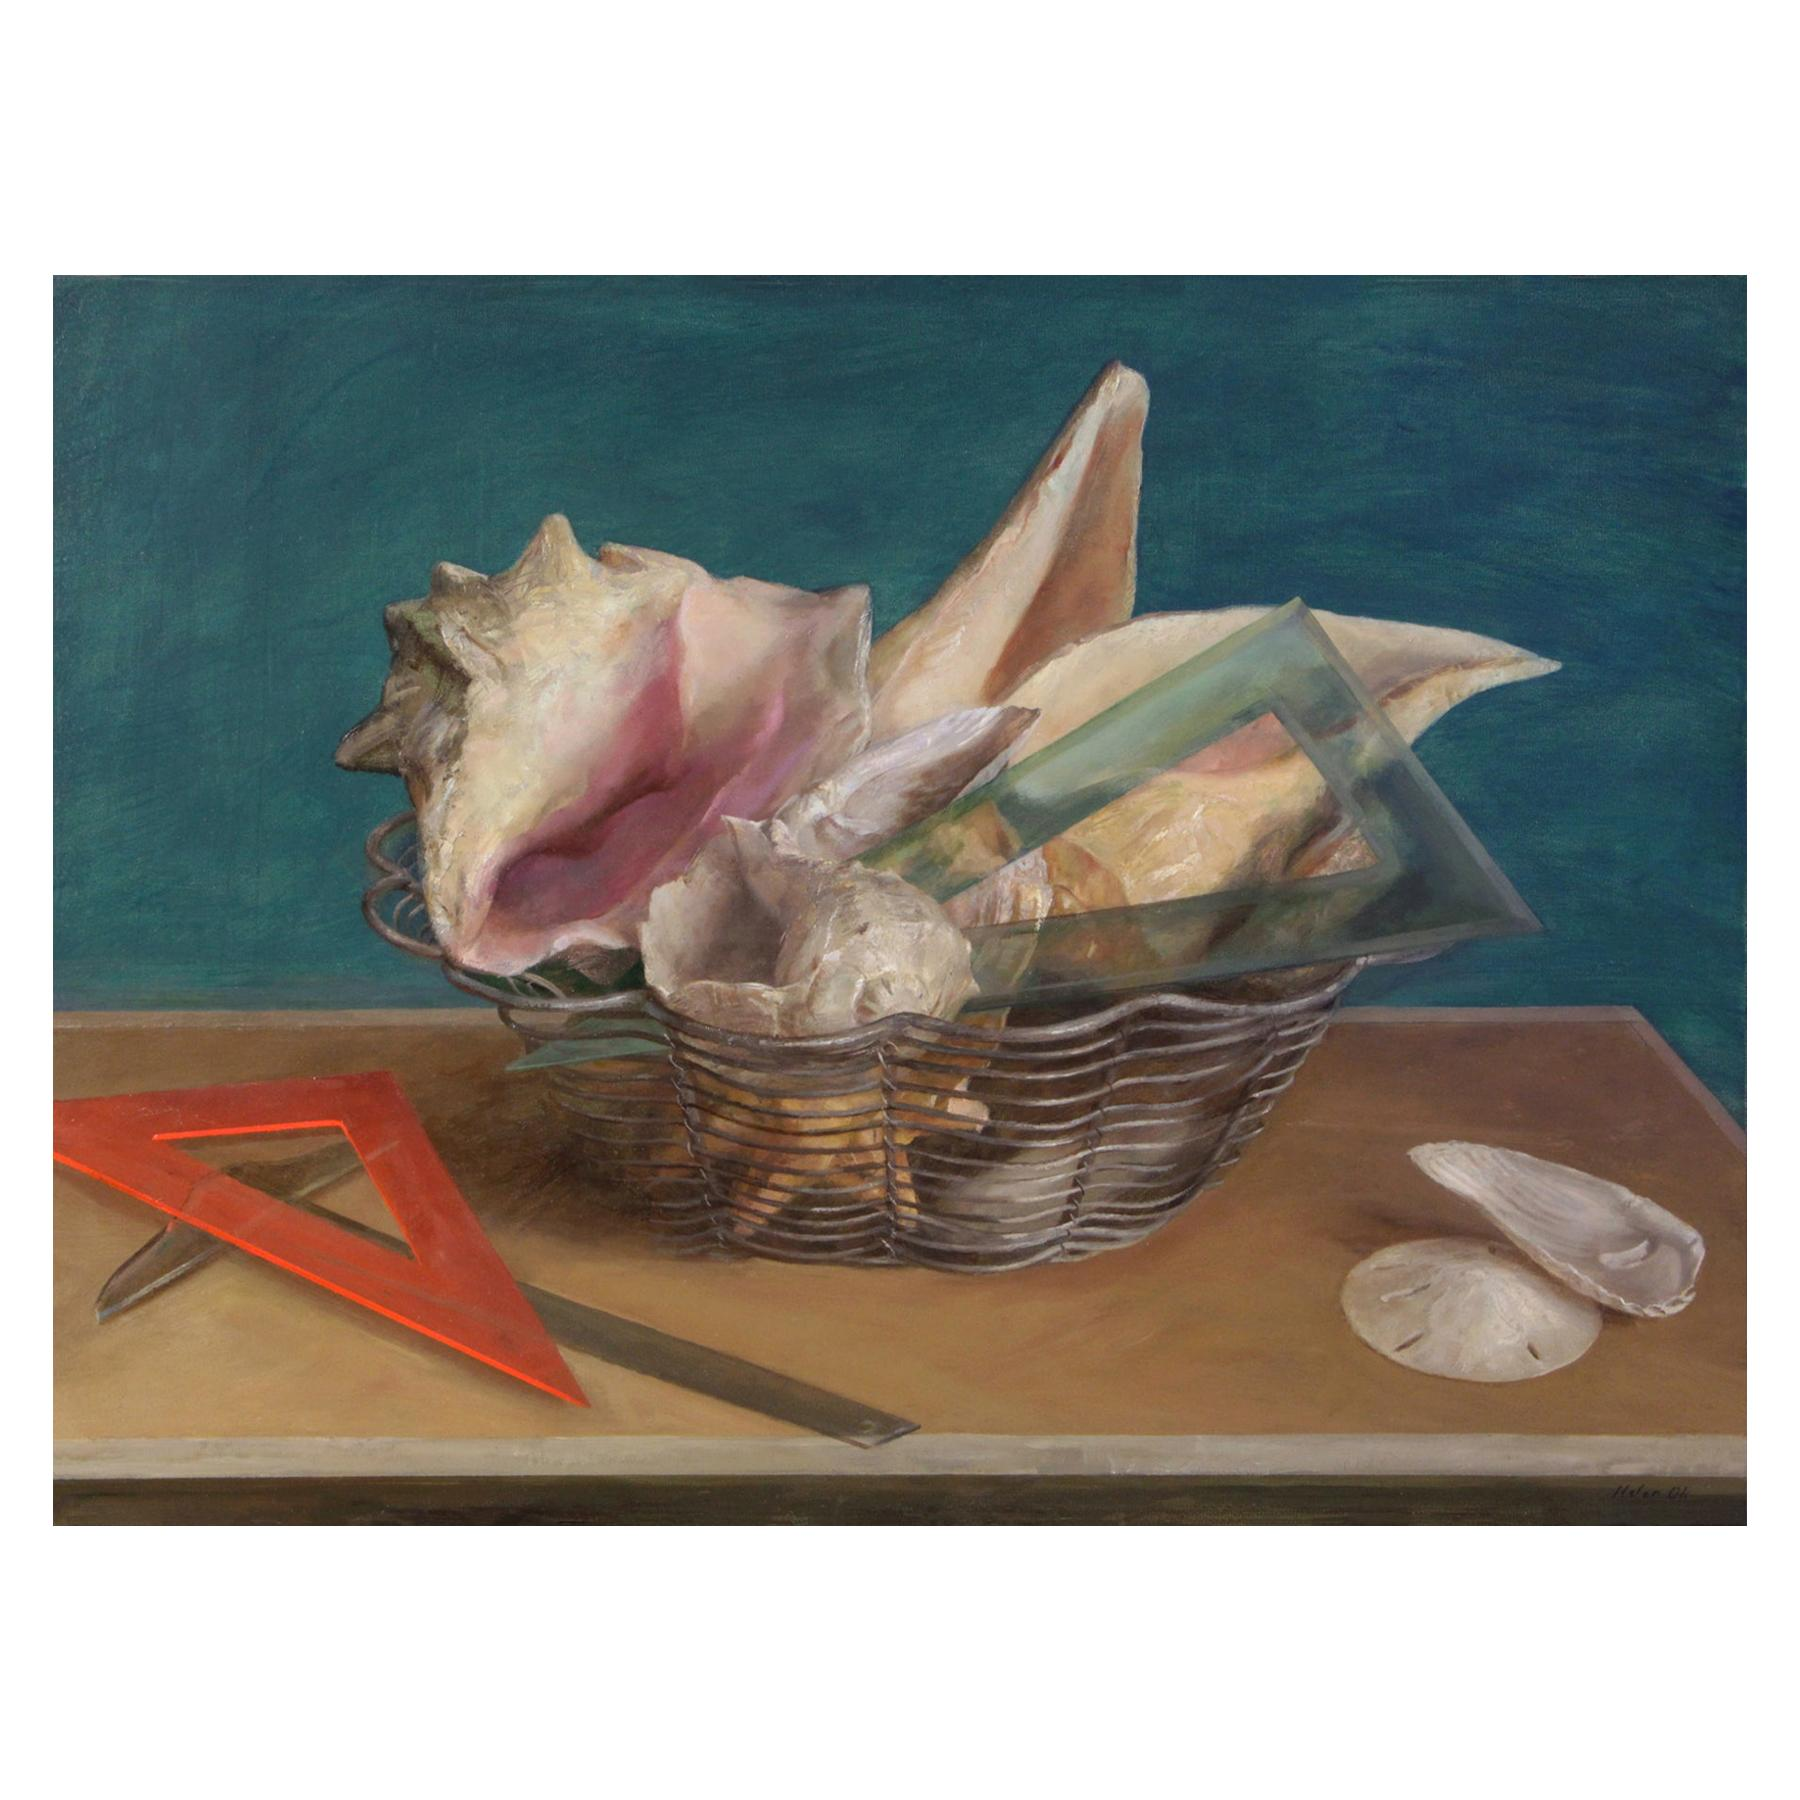 Still Life in Wire Basket, Basket Filled with Sea Shells & Architectural Tools